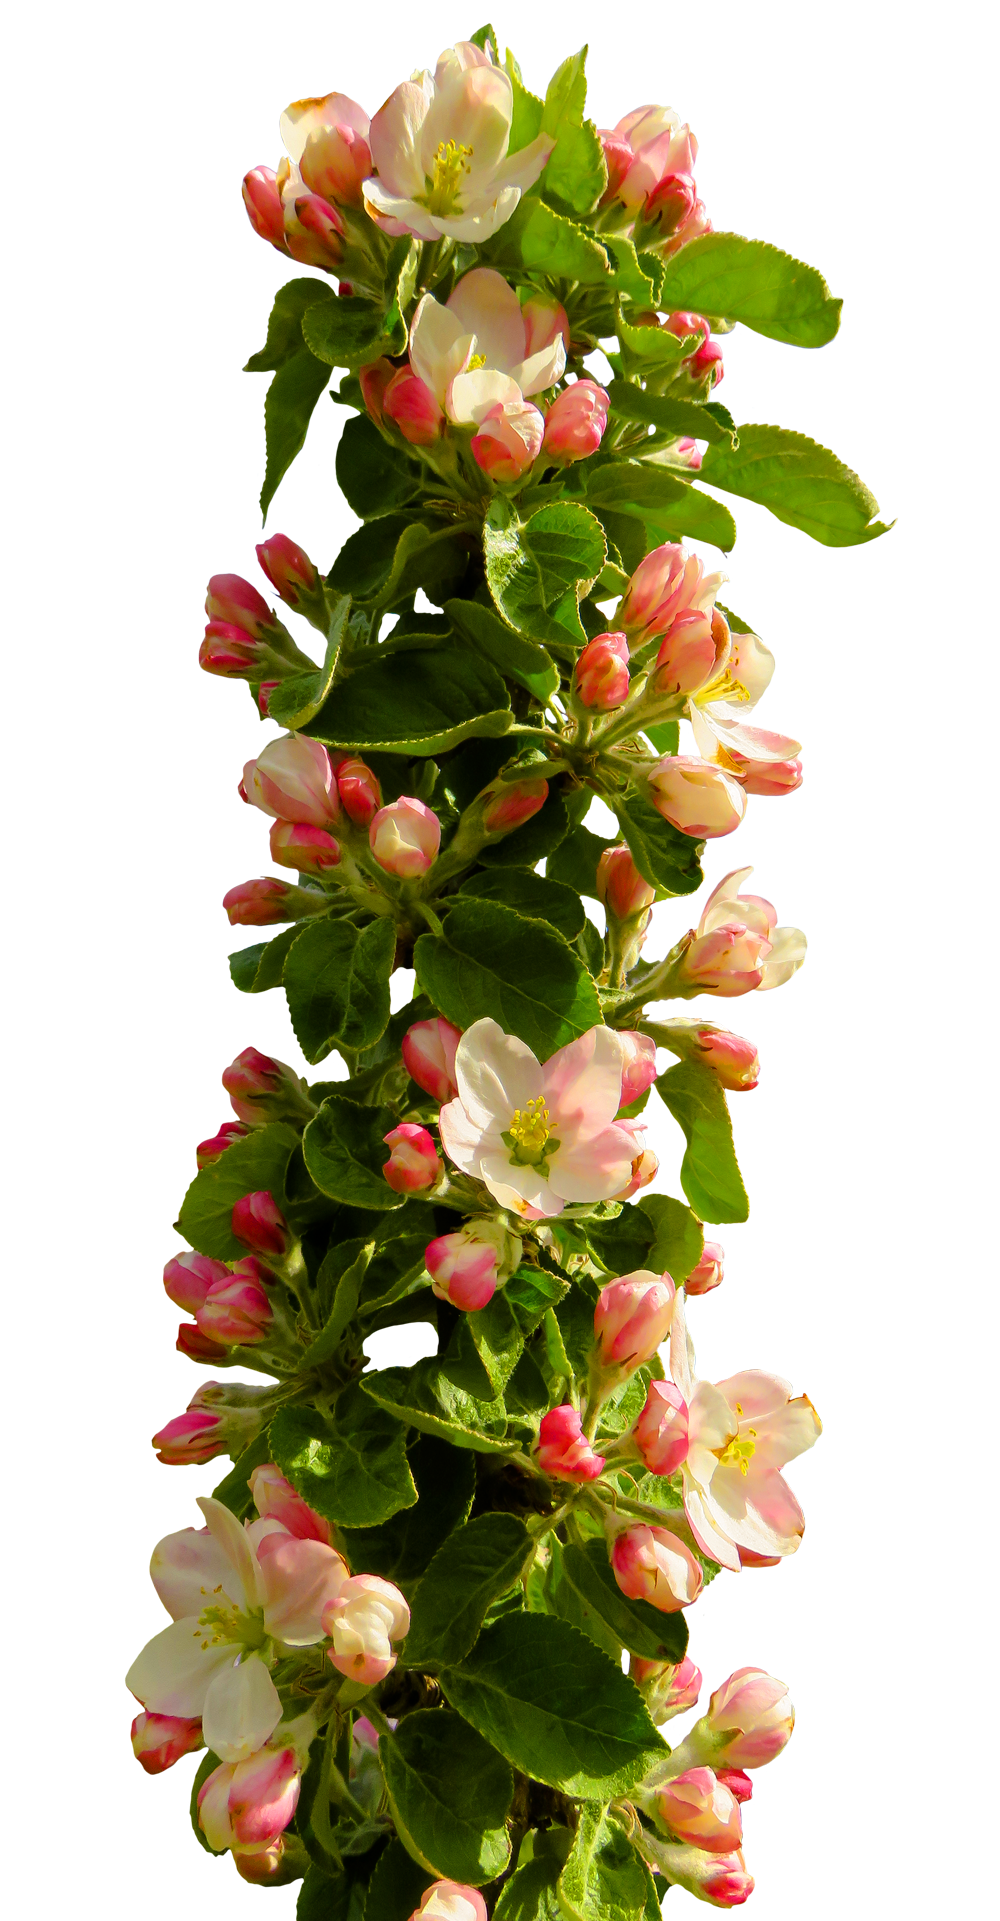 Top view flower png. Flowers images pngpix spring